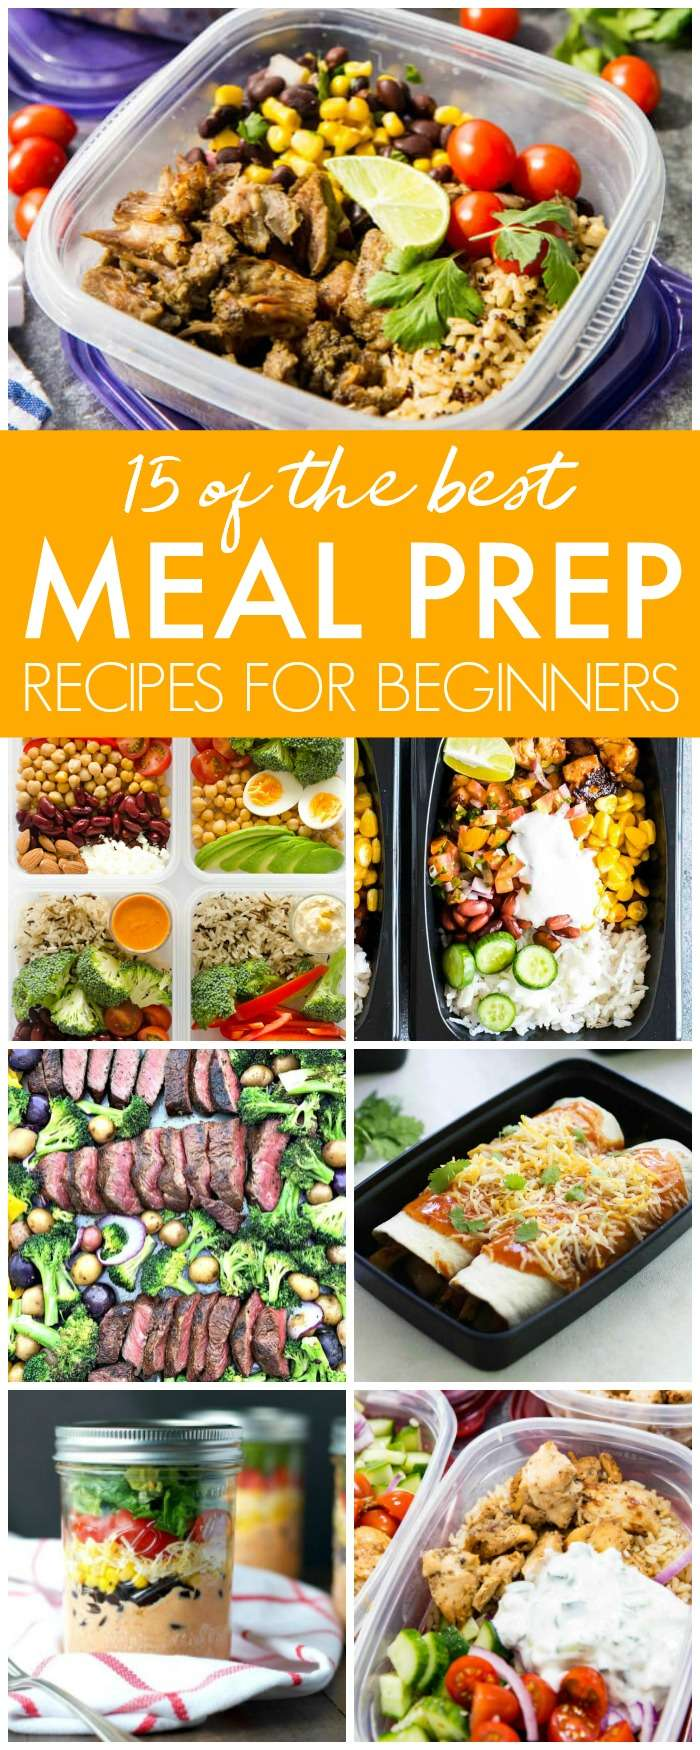 15 of the Best Meal Prep Recipes - Passion For Savings -   18 meal prep recipes for the week lunches ideas